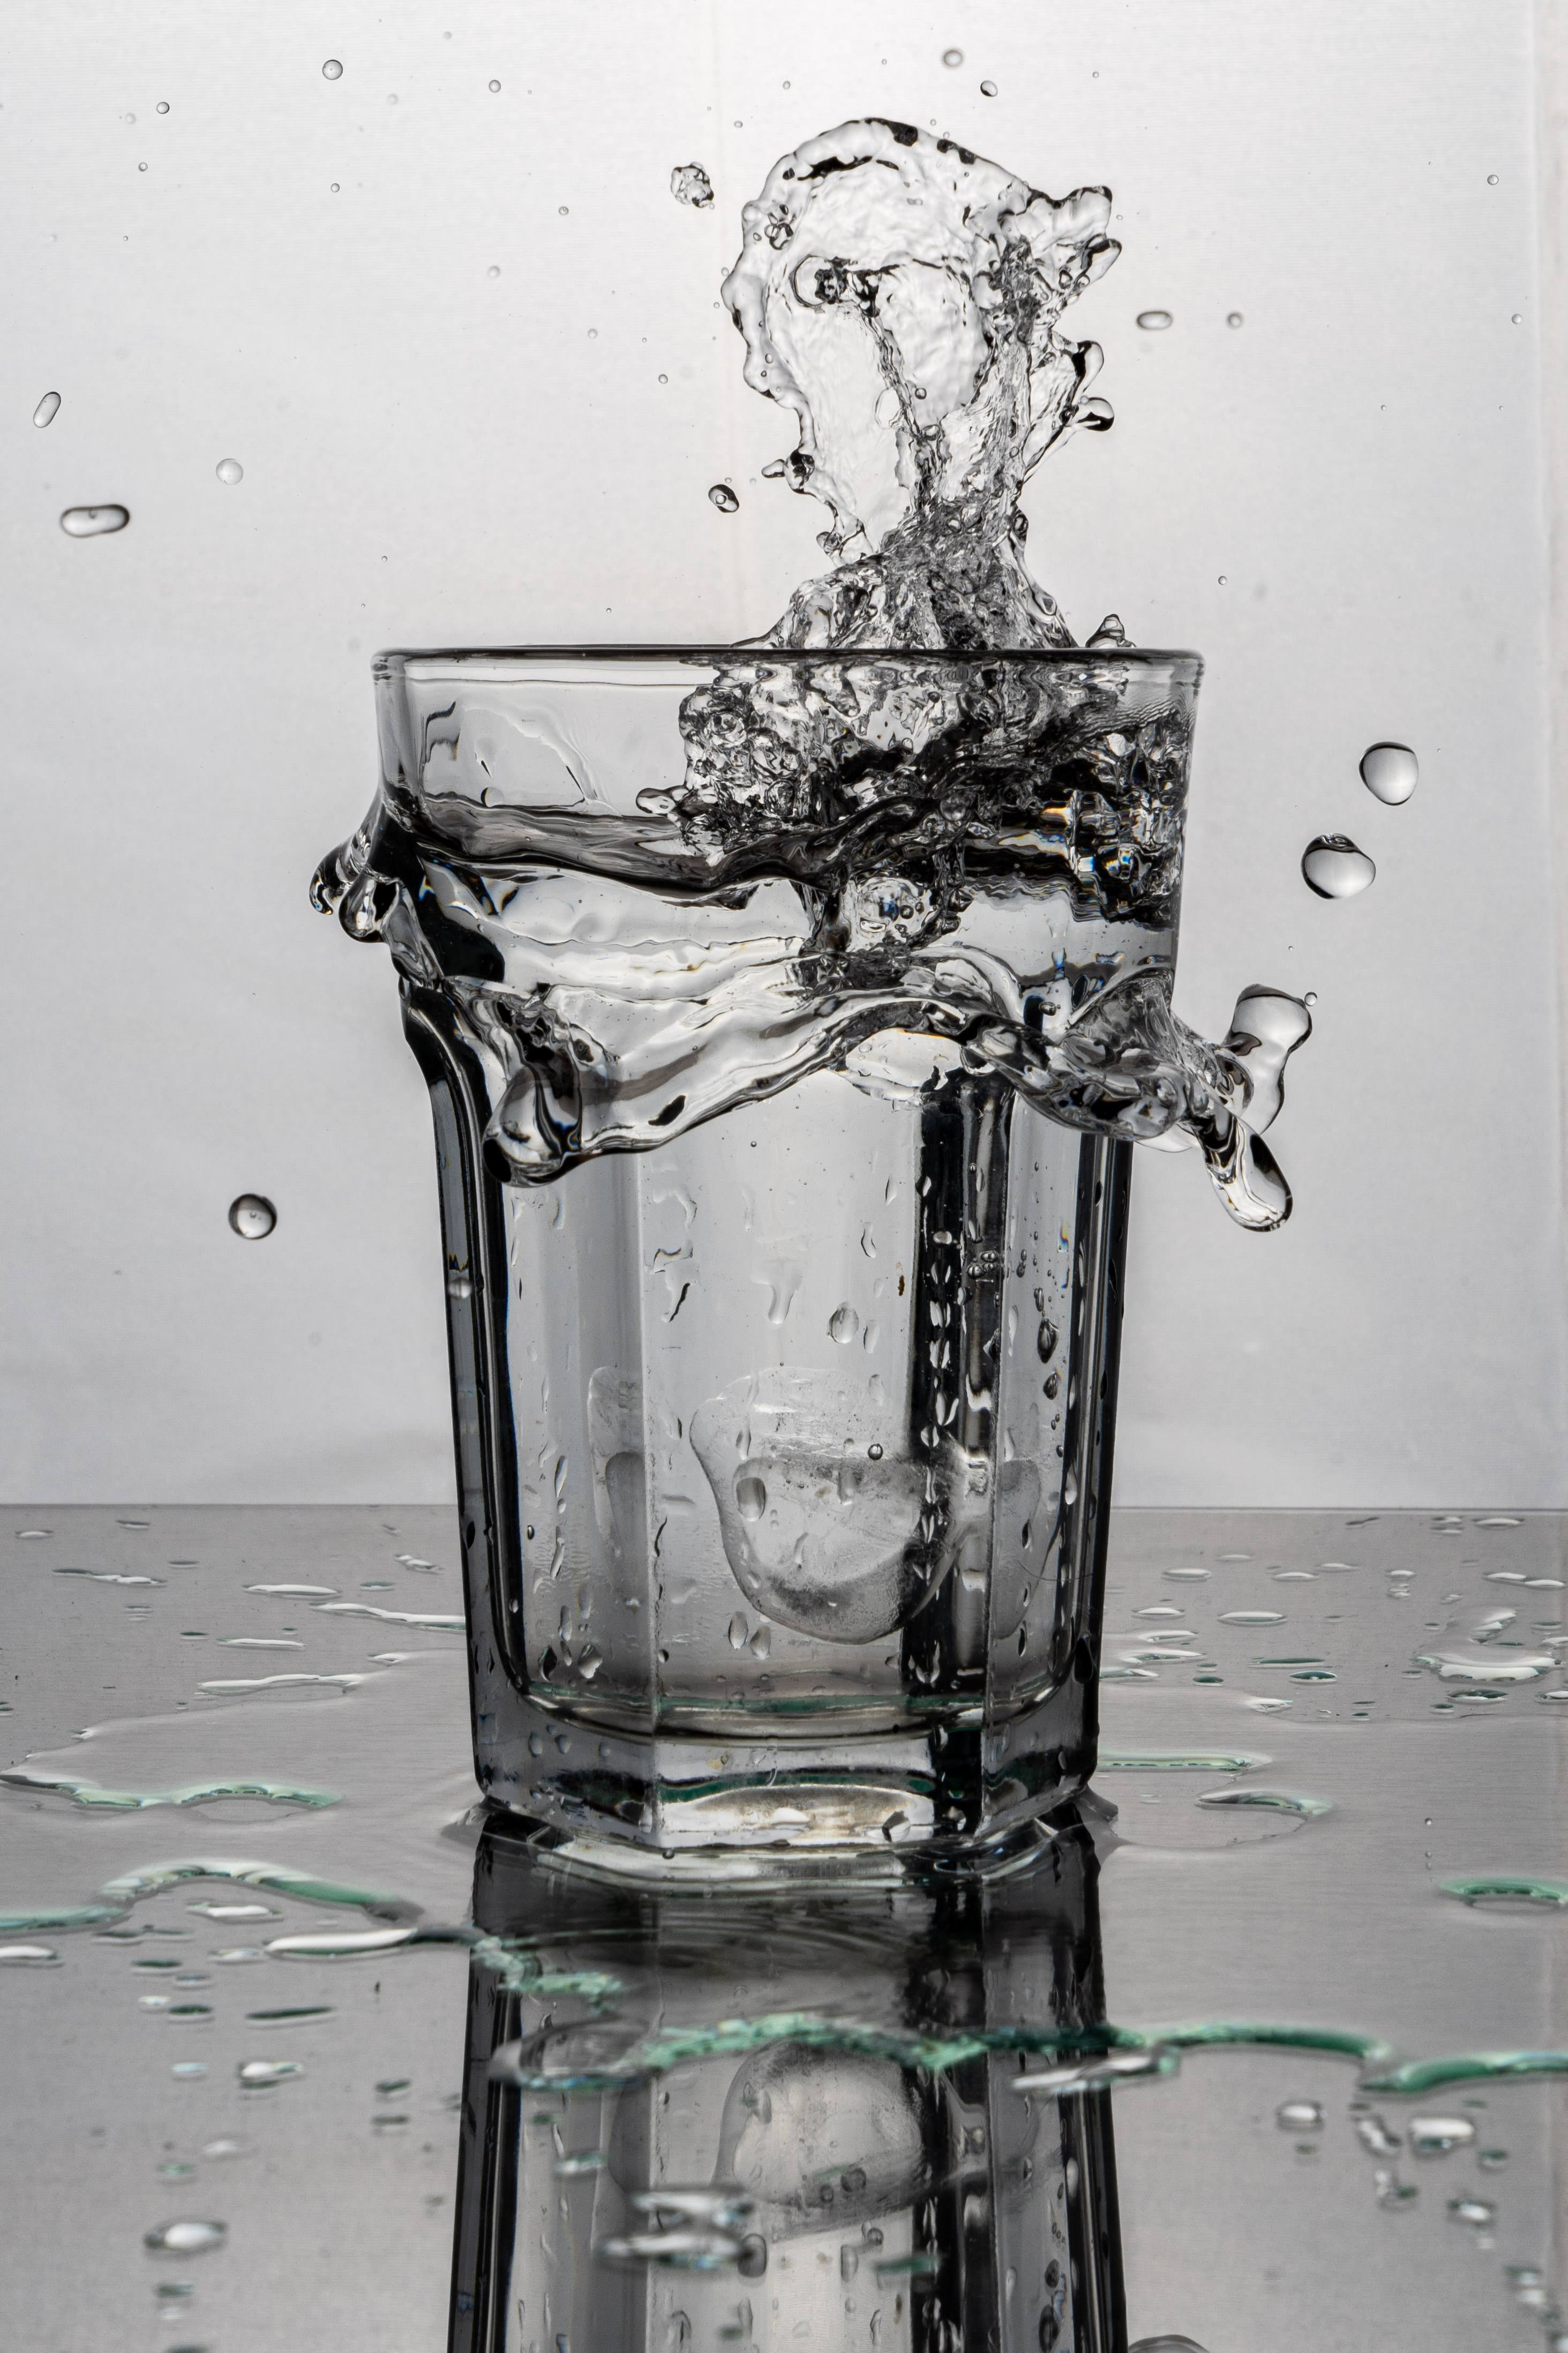 A glass filled with water.